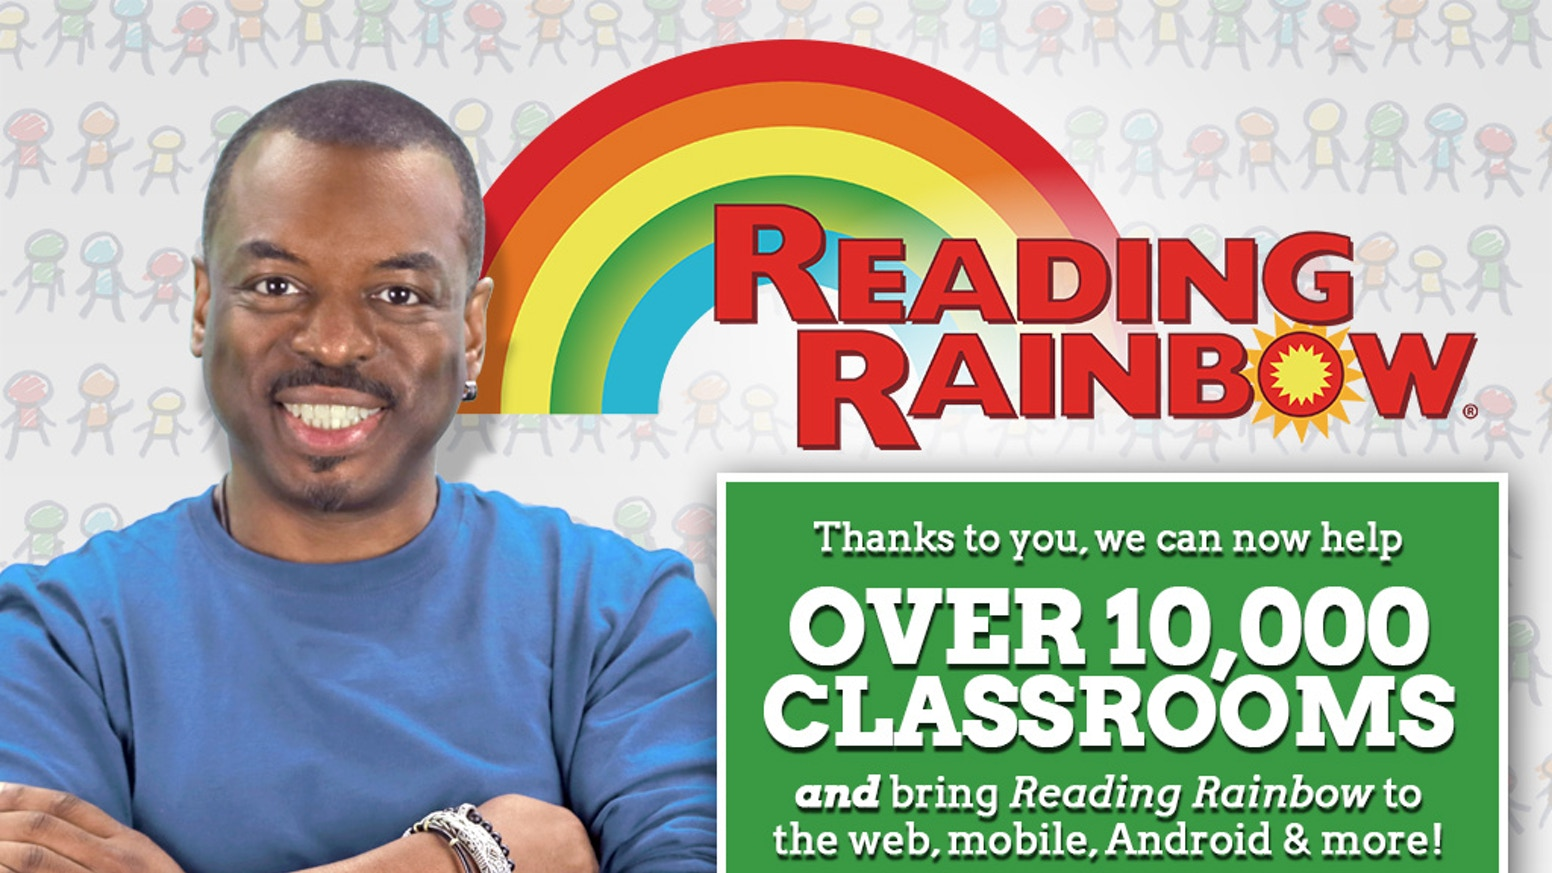 Bring Reading Rainbow's library of interactive books & video field trips to more platforms & provide free access to classrooms in need!